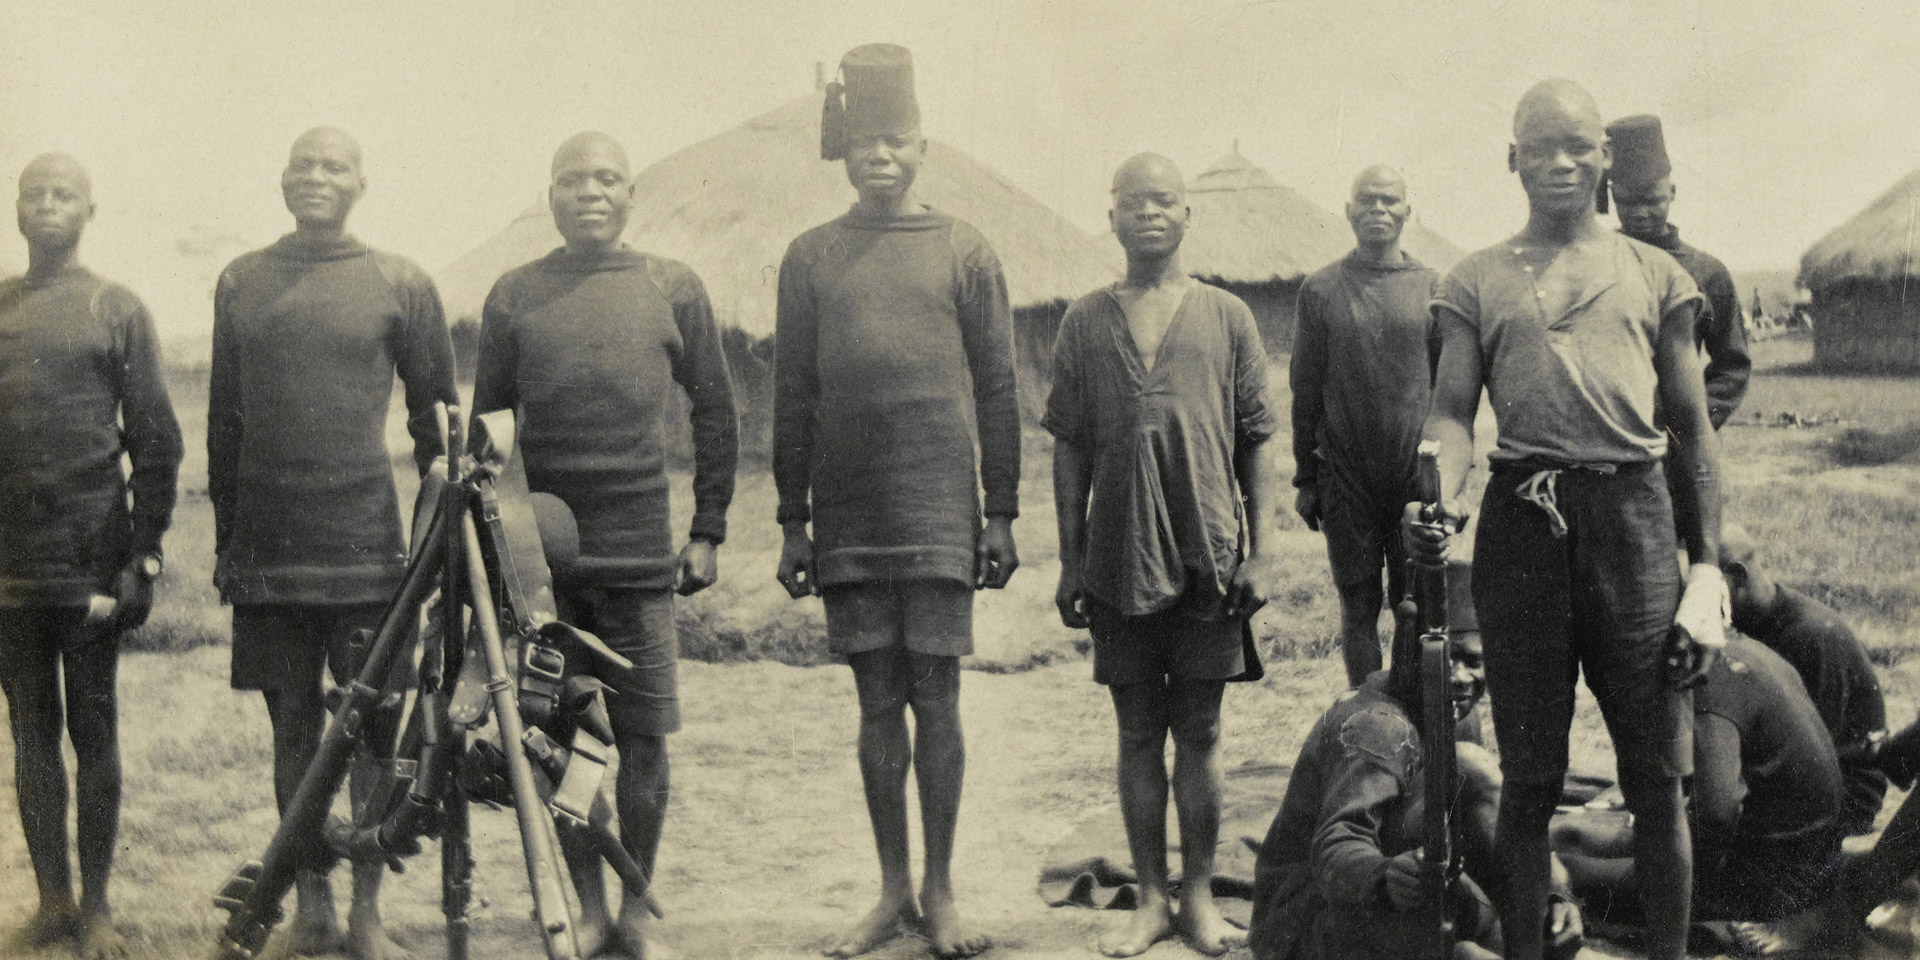 Men of the King's African Rifles pose for a photograph in camp